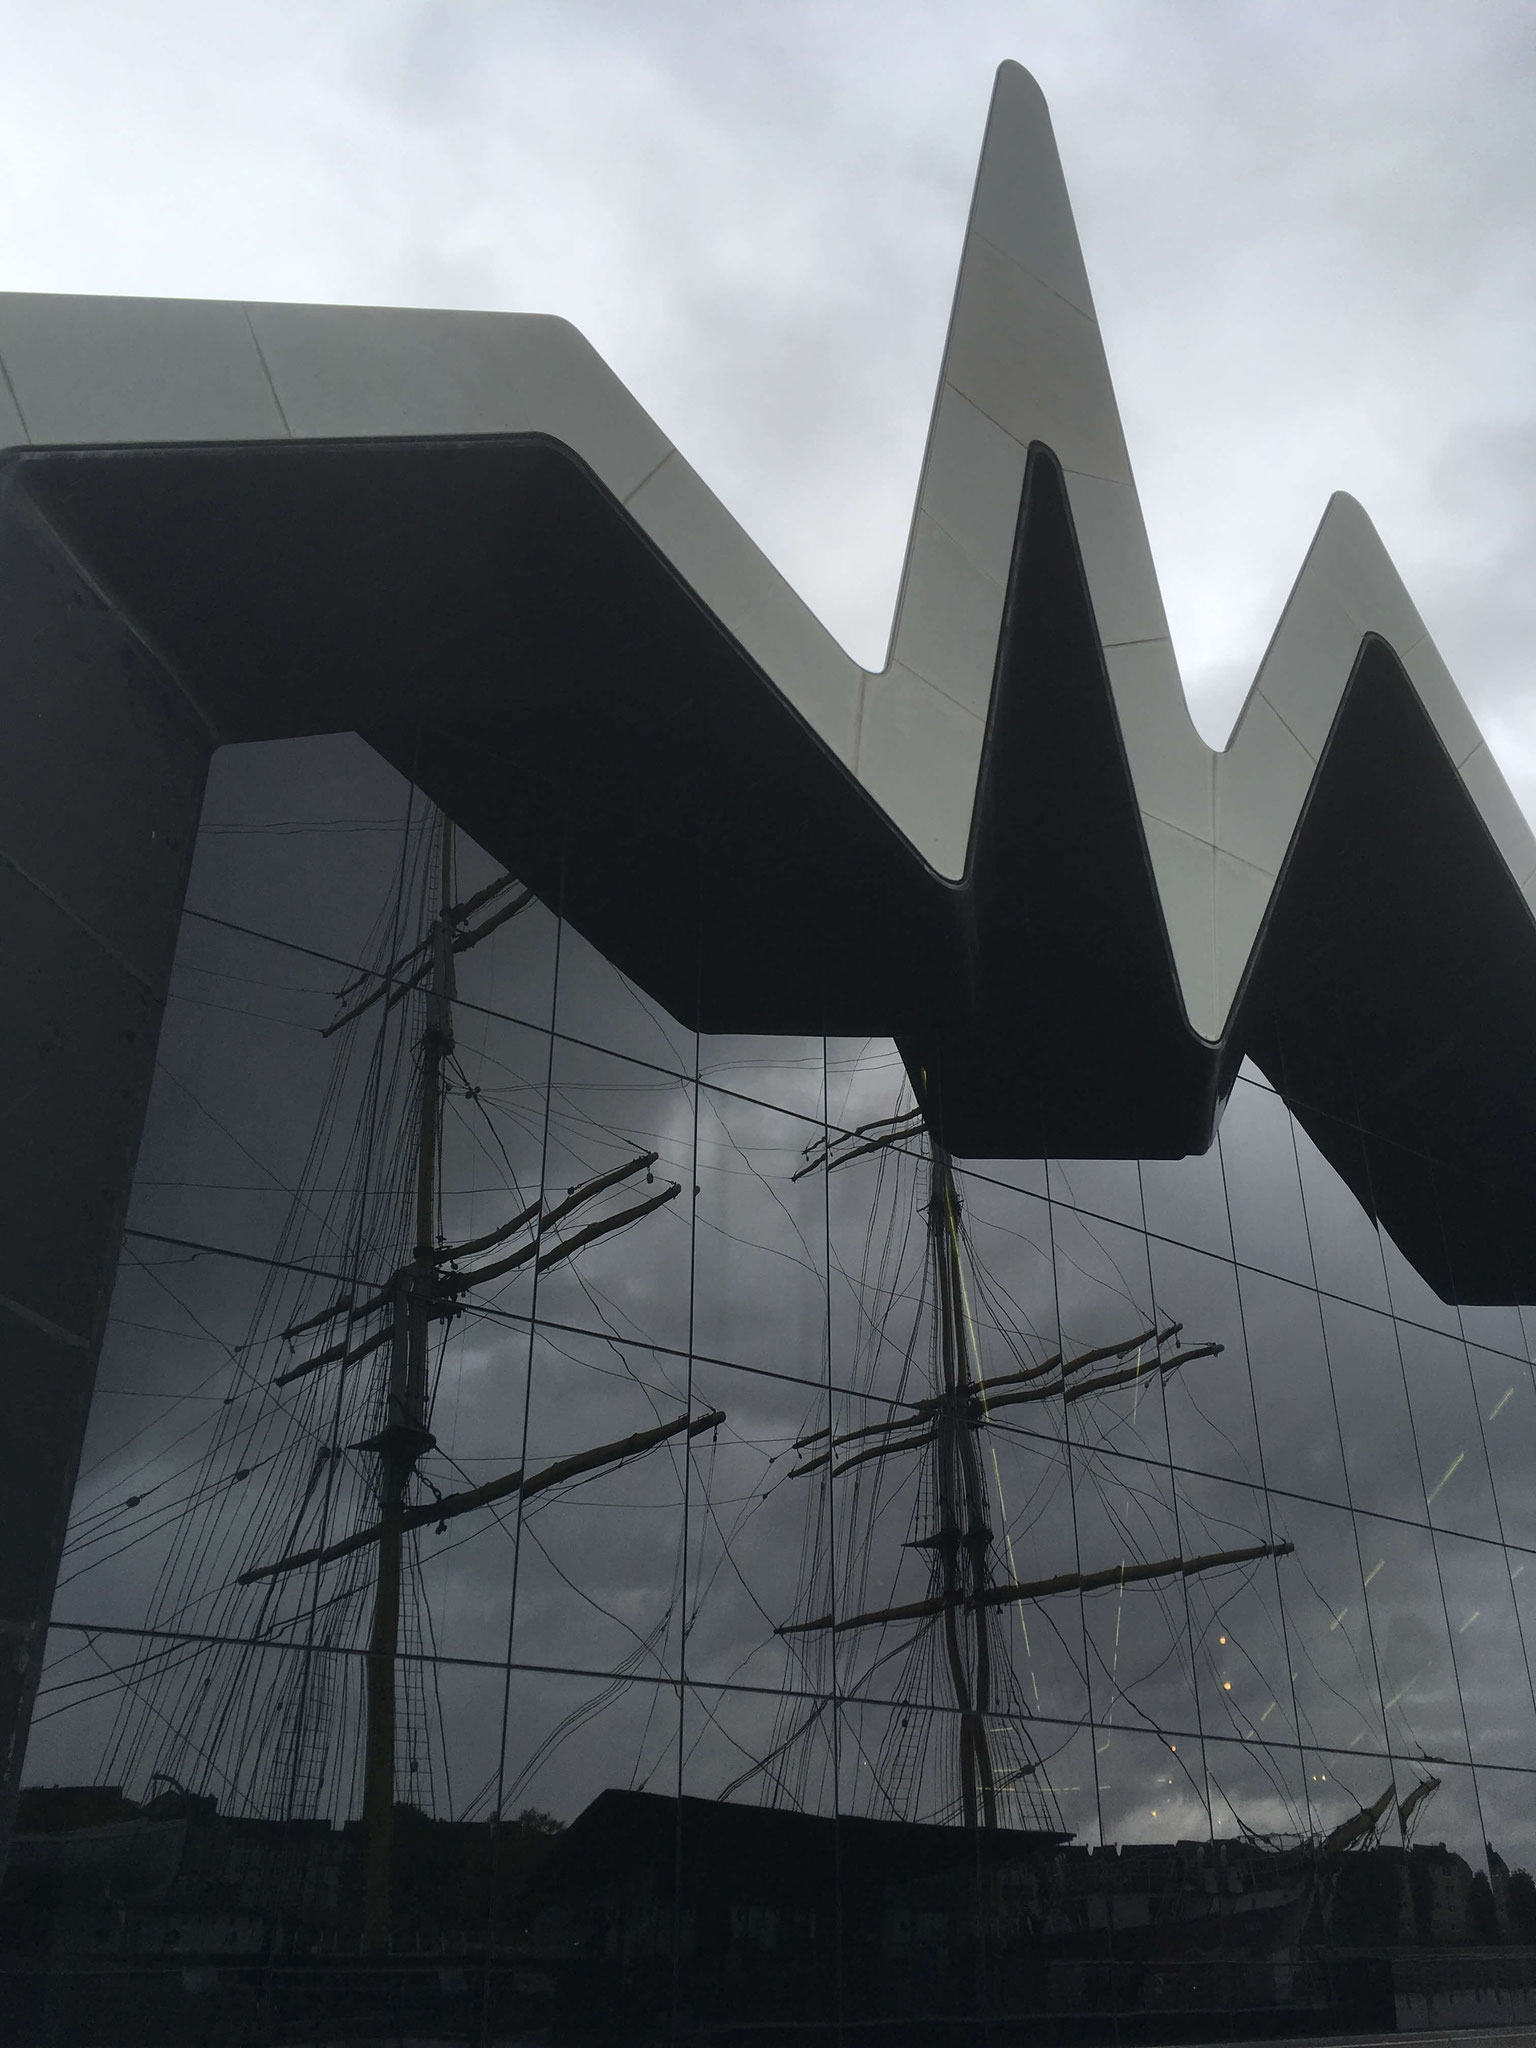 Glenlee reflection in the windows of the Riverside Museum Glasgow